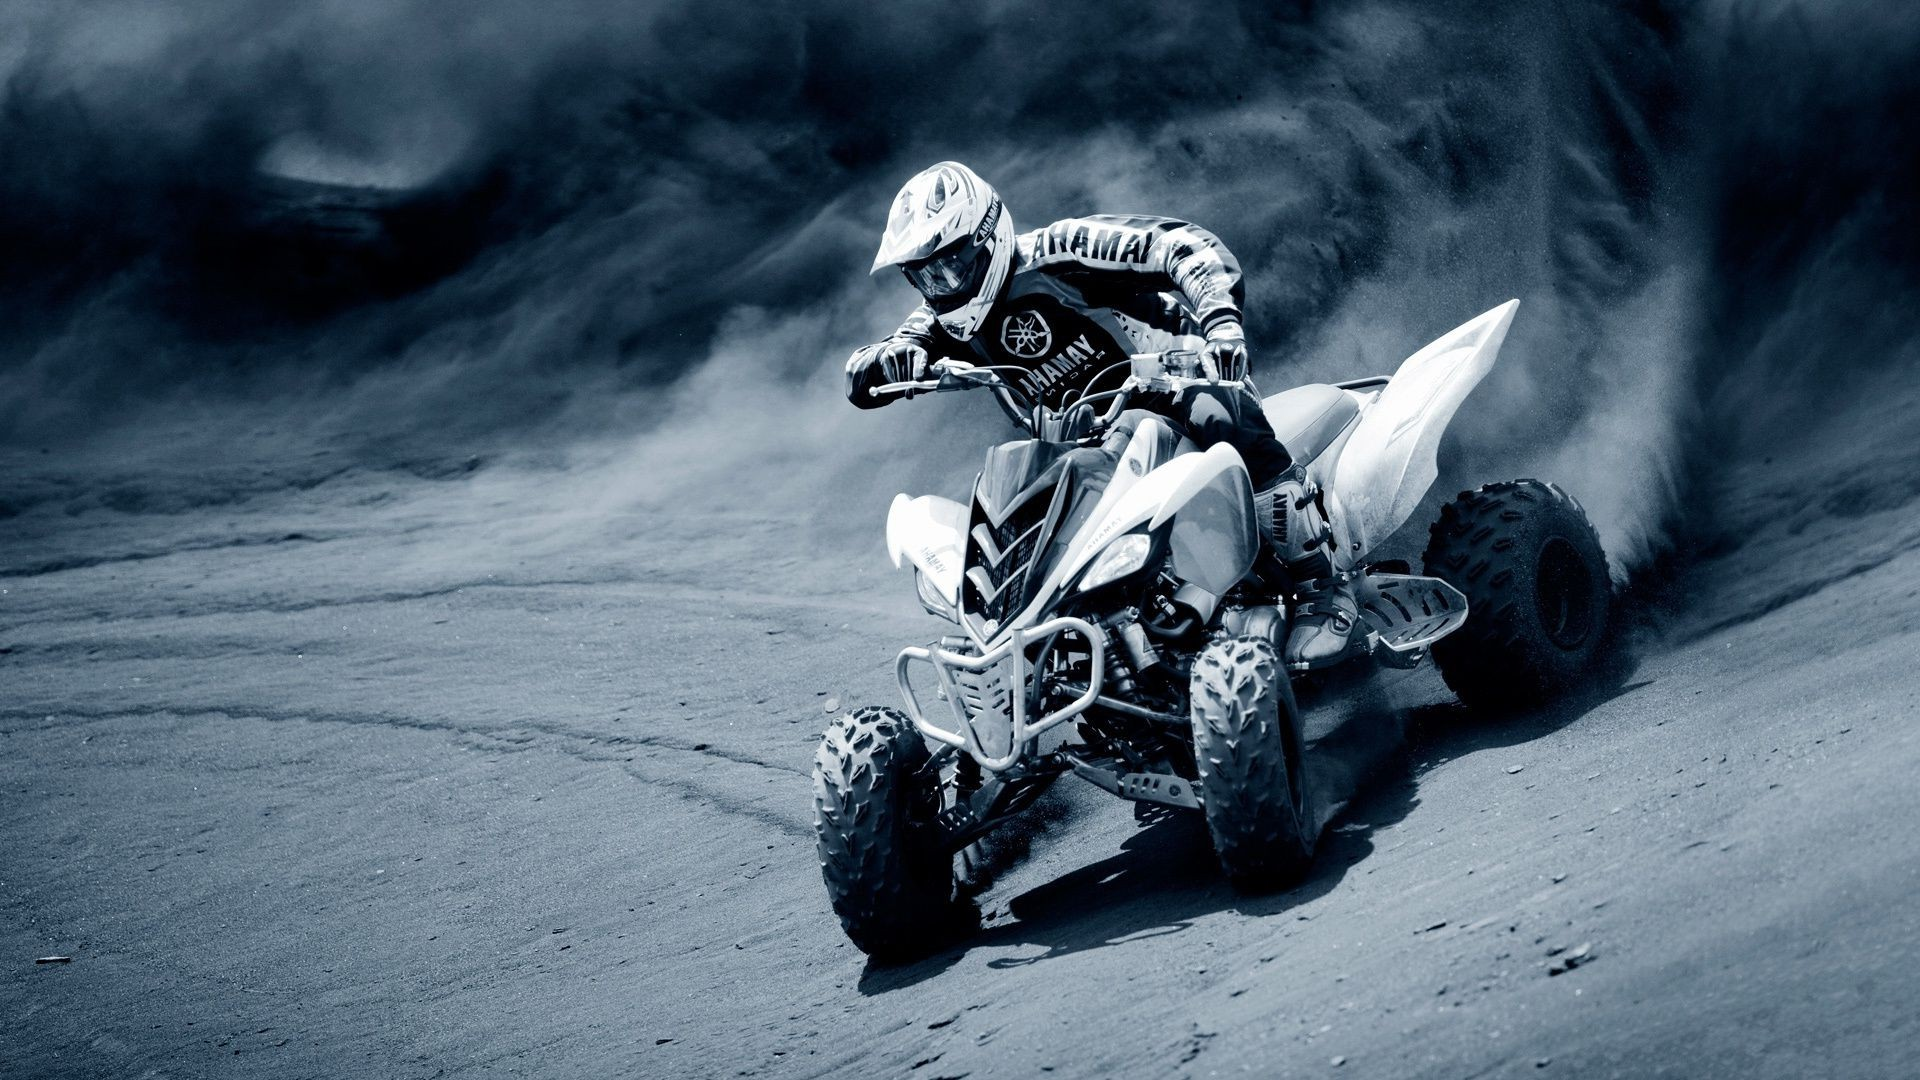 ATV Yamaha. Android Wallpapers For Free